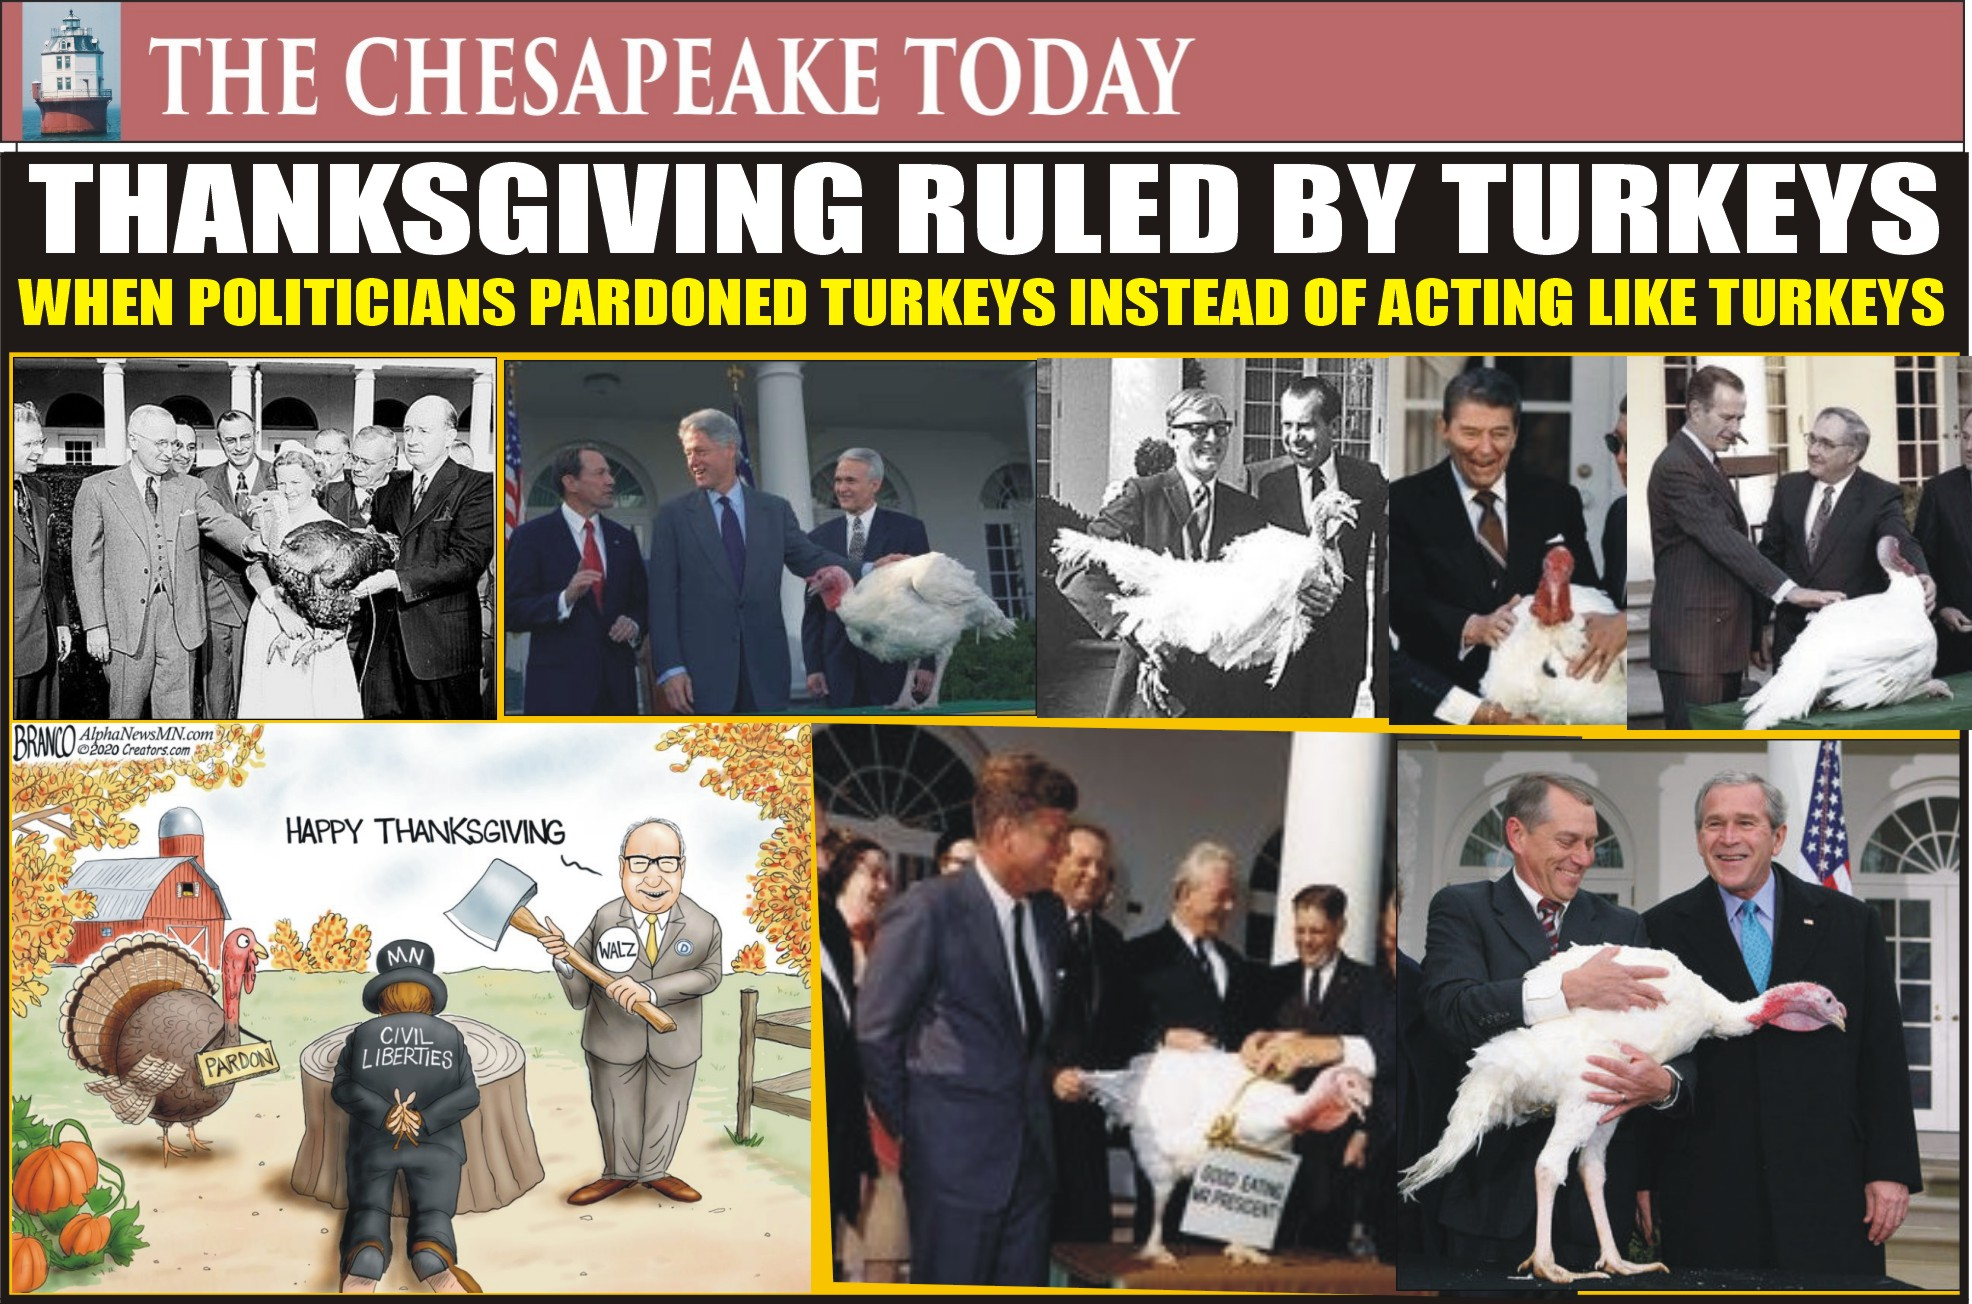 History in Photos: Thanksgiving Turkeys used to be pardoned; now Governor Turkeys threaten jail for families at Thanksgiving